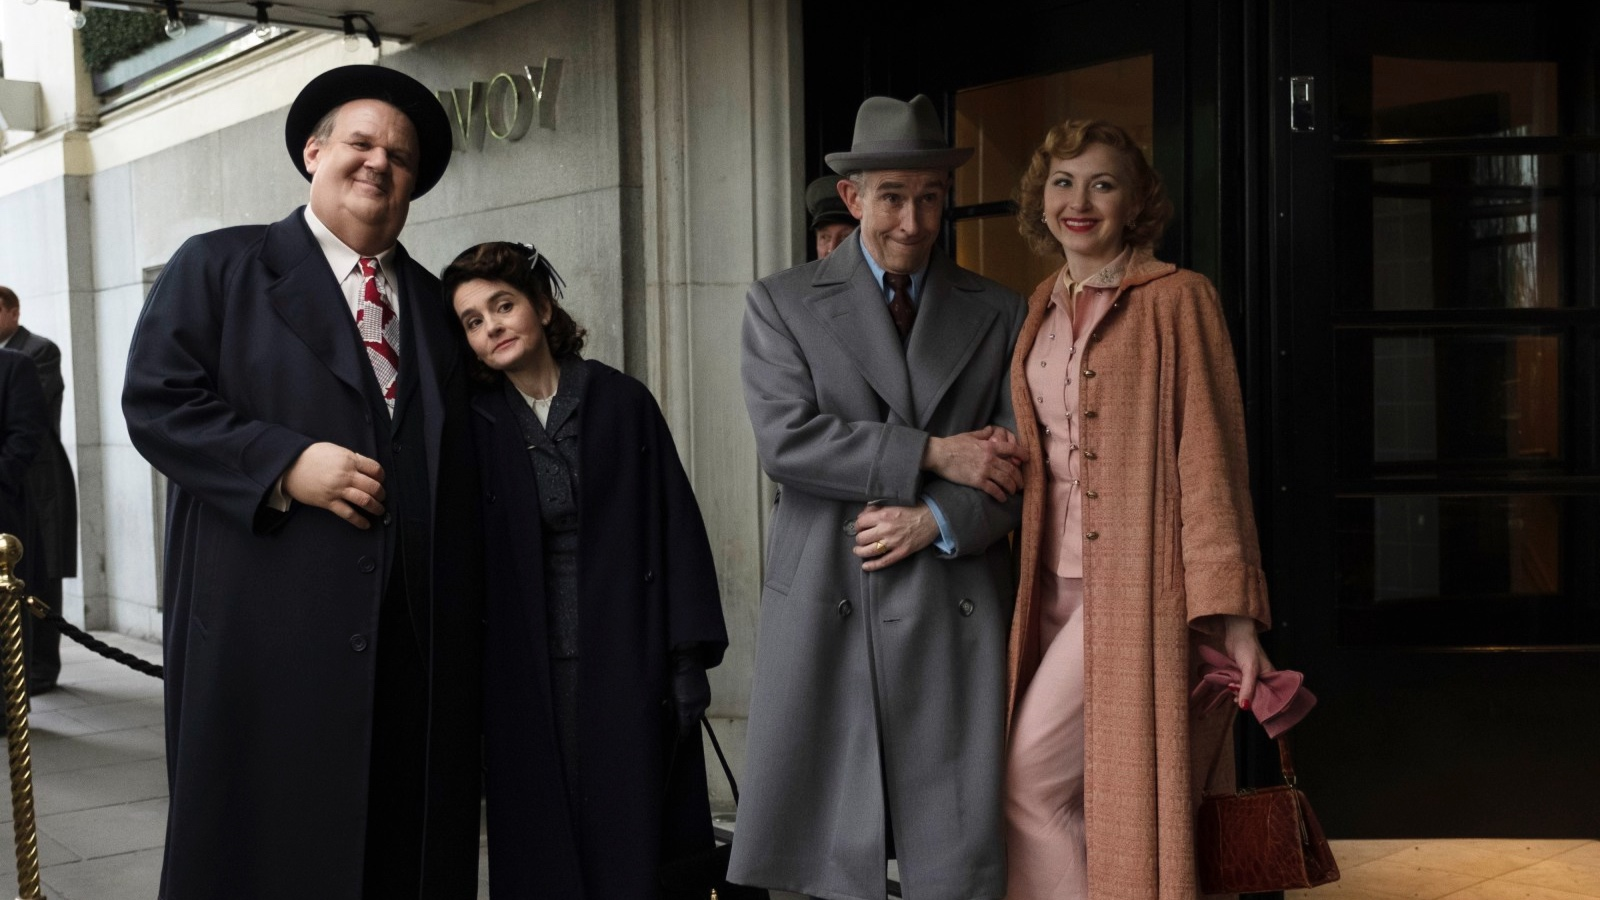 John C. Reilly at Oliver Hardy, Shirley Henderson as Lucille Hardy, Steve Coogan as Stanley Laurel, Nina Arianda as Ida Kitaeva Laurel